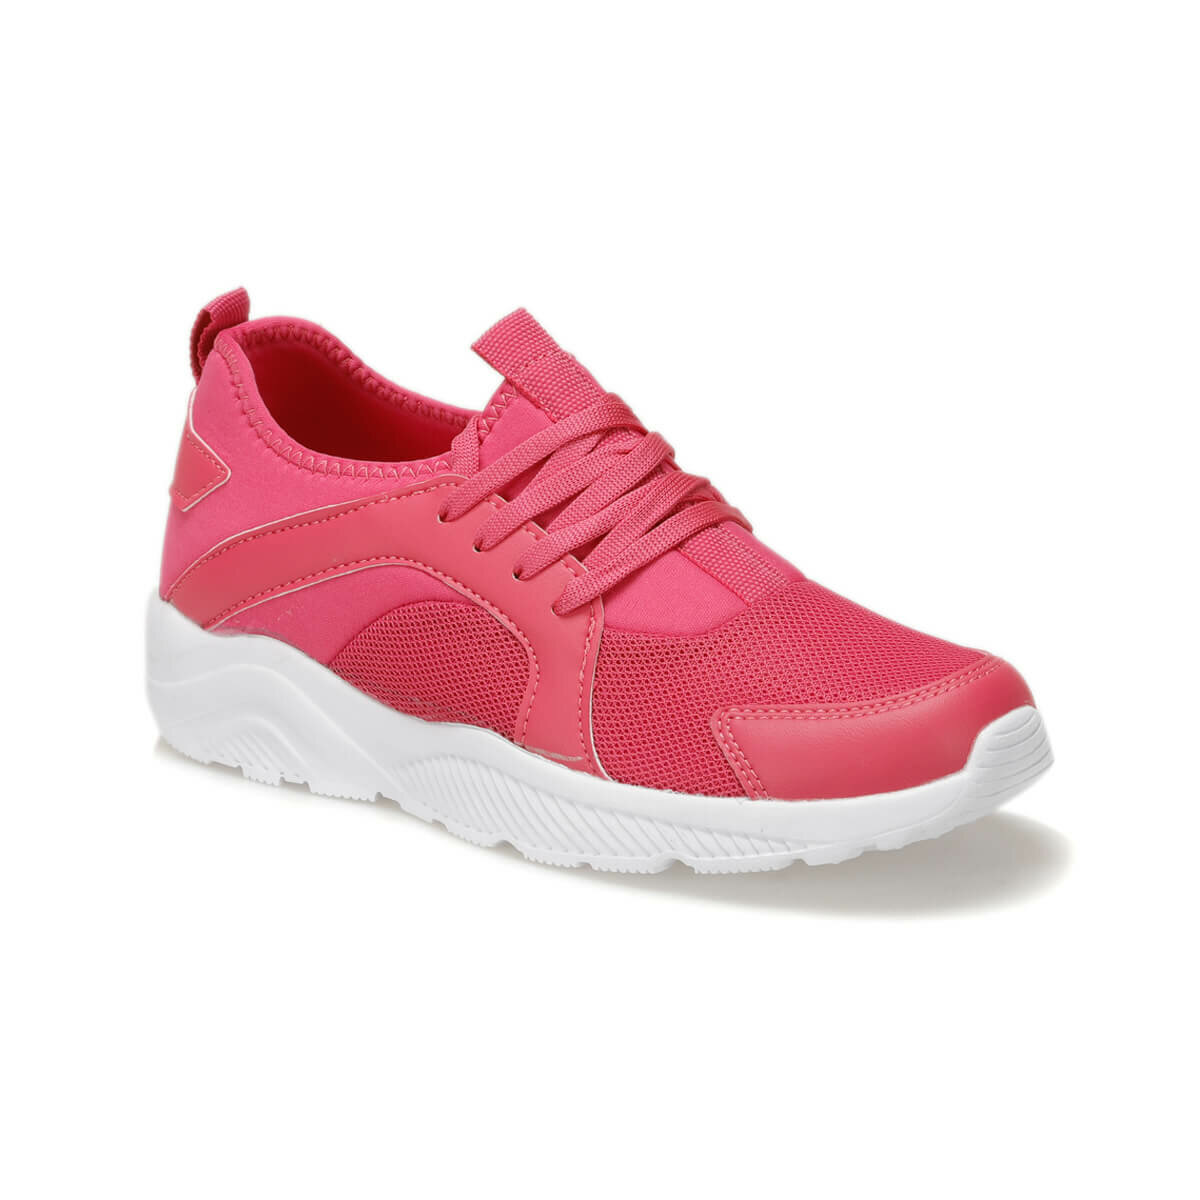 FLO ERA W Fuchsia Women Sneaker Shoes Torex